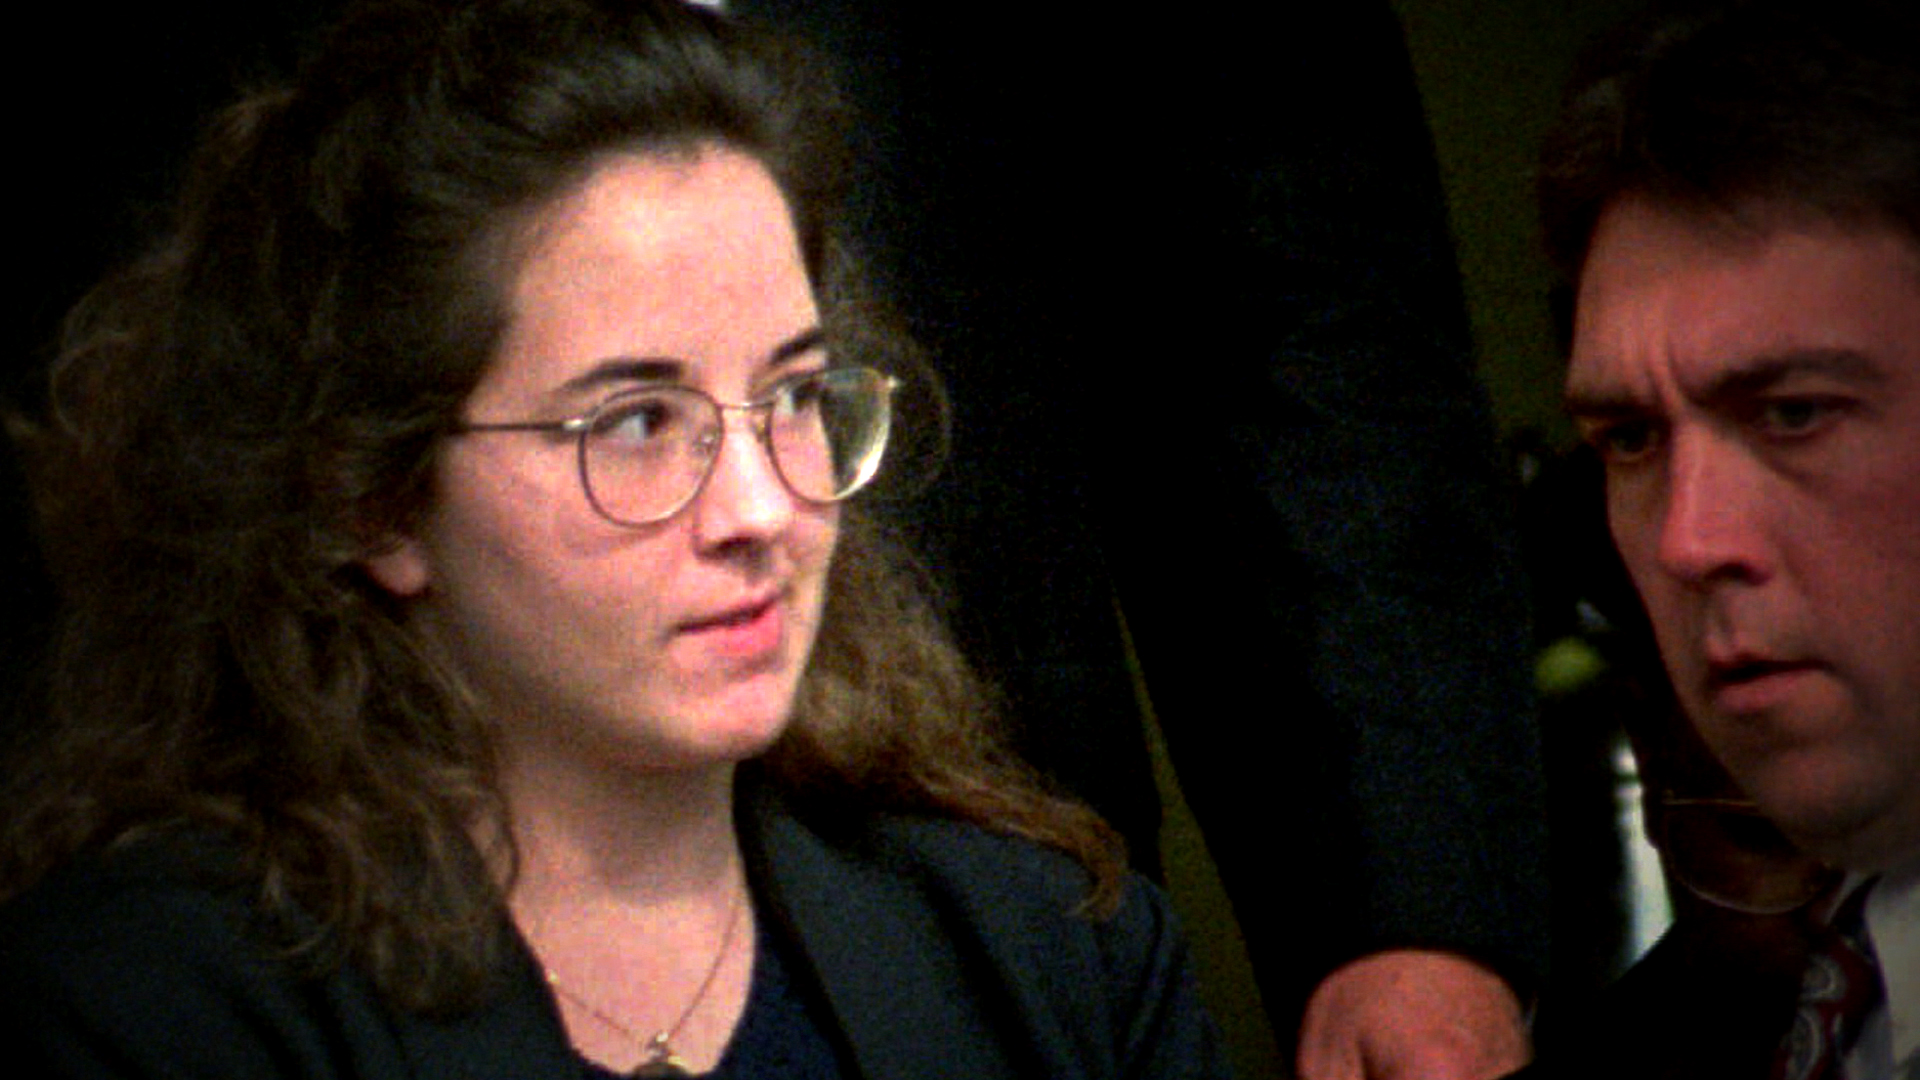 Susan Smith tells reporter she is not a monster 20 years